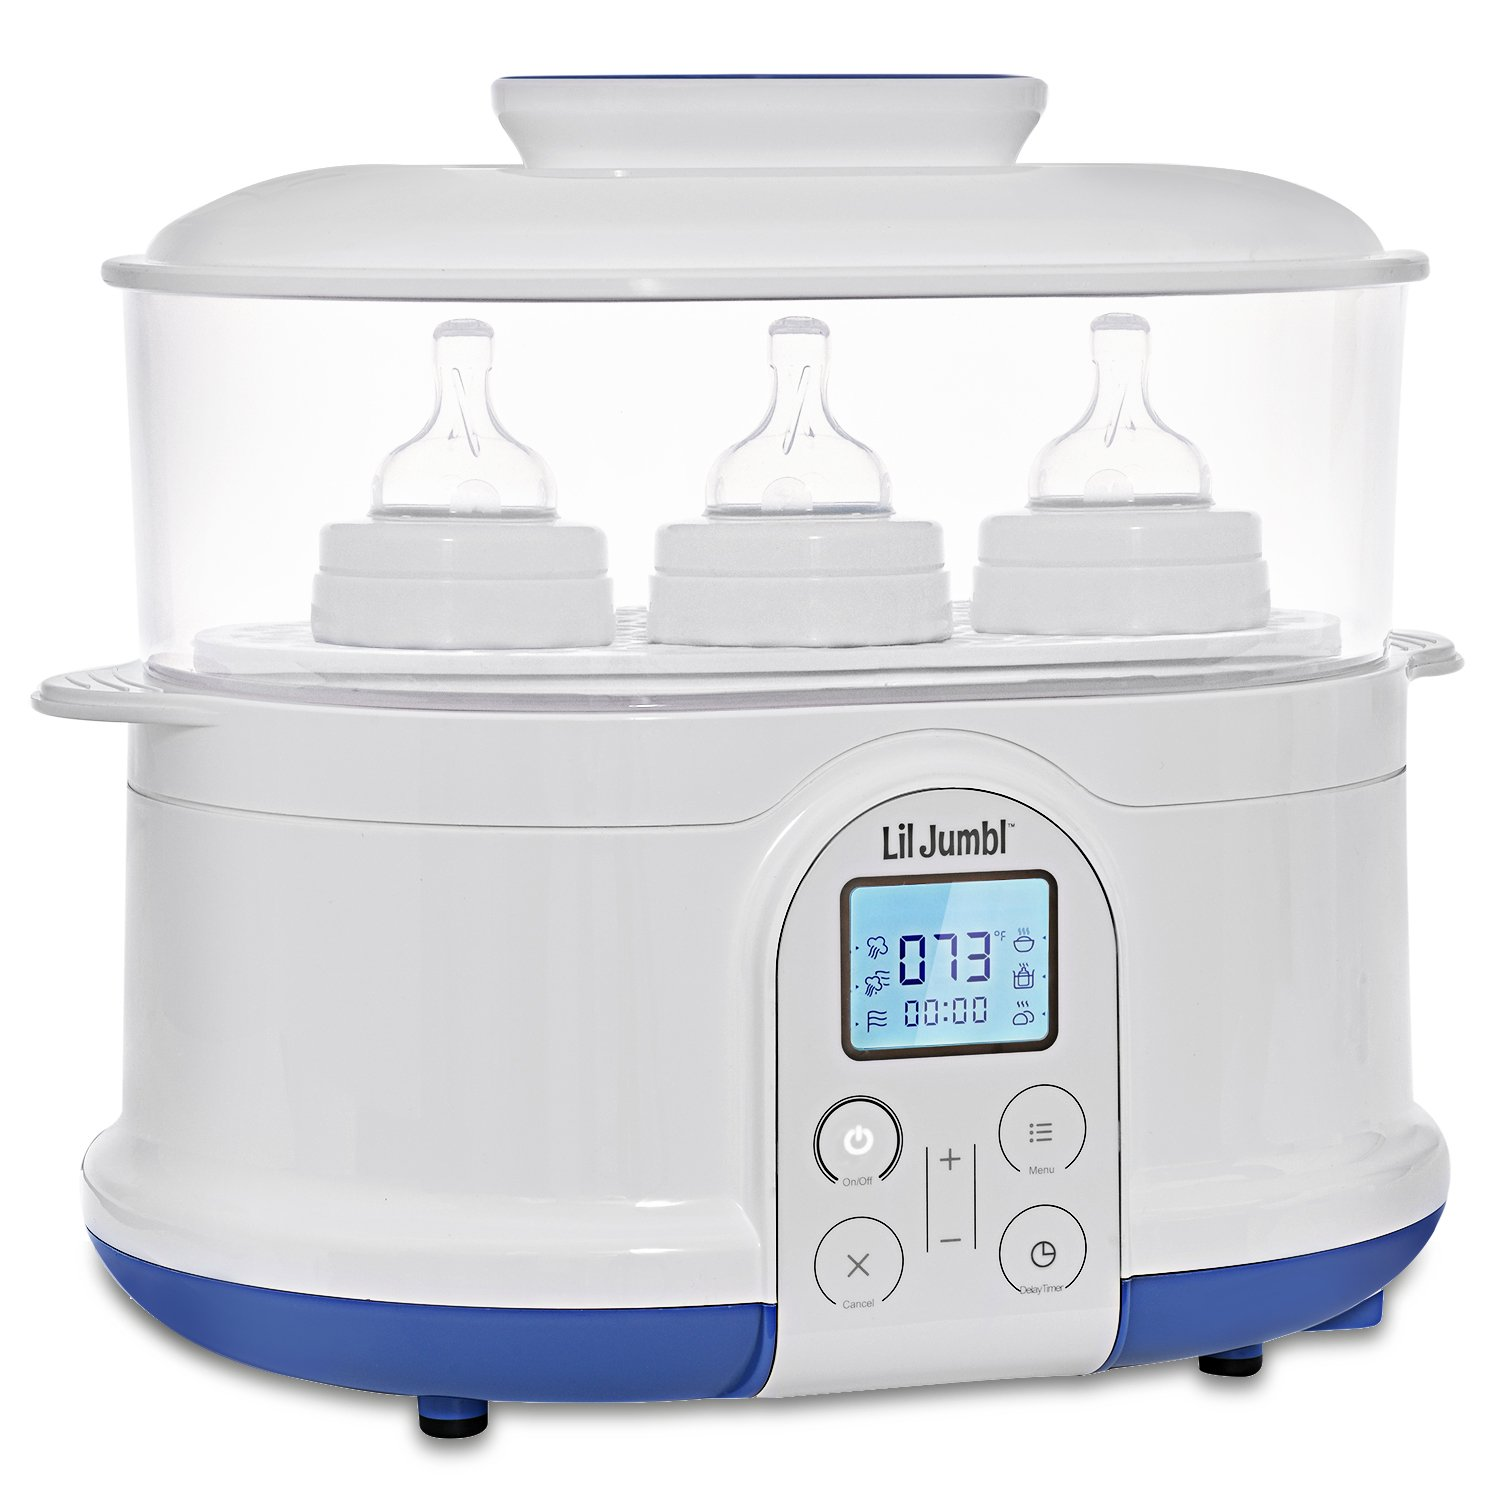 Lil' Jumbl 4-in-1 Bottle Sterilizer Warmer & Dryer w/Food Steamer Function – Digital LCD Display with Custom Heat Settings